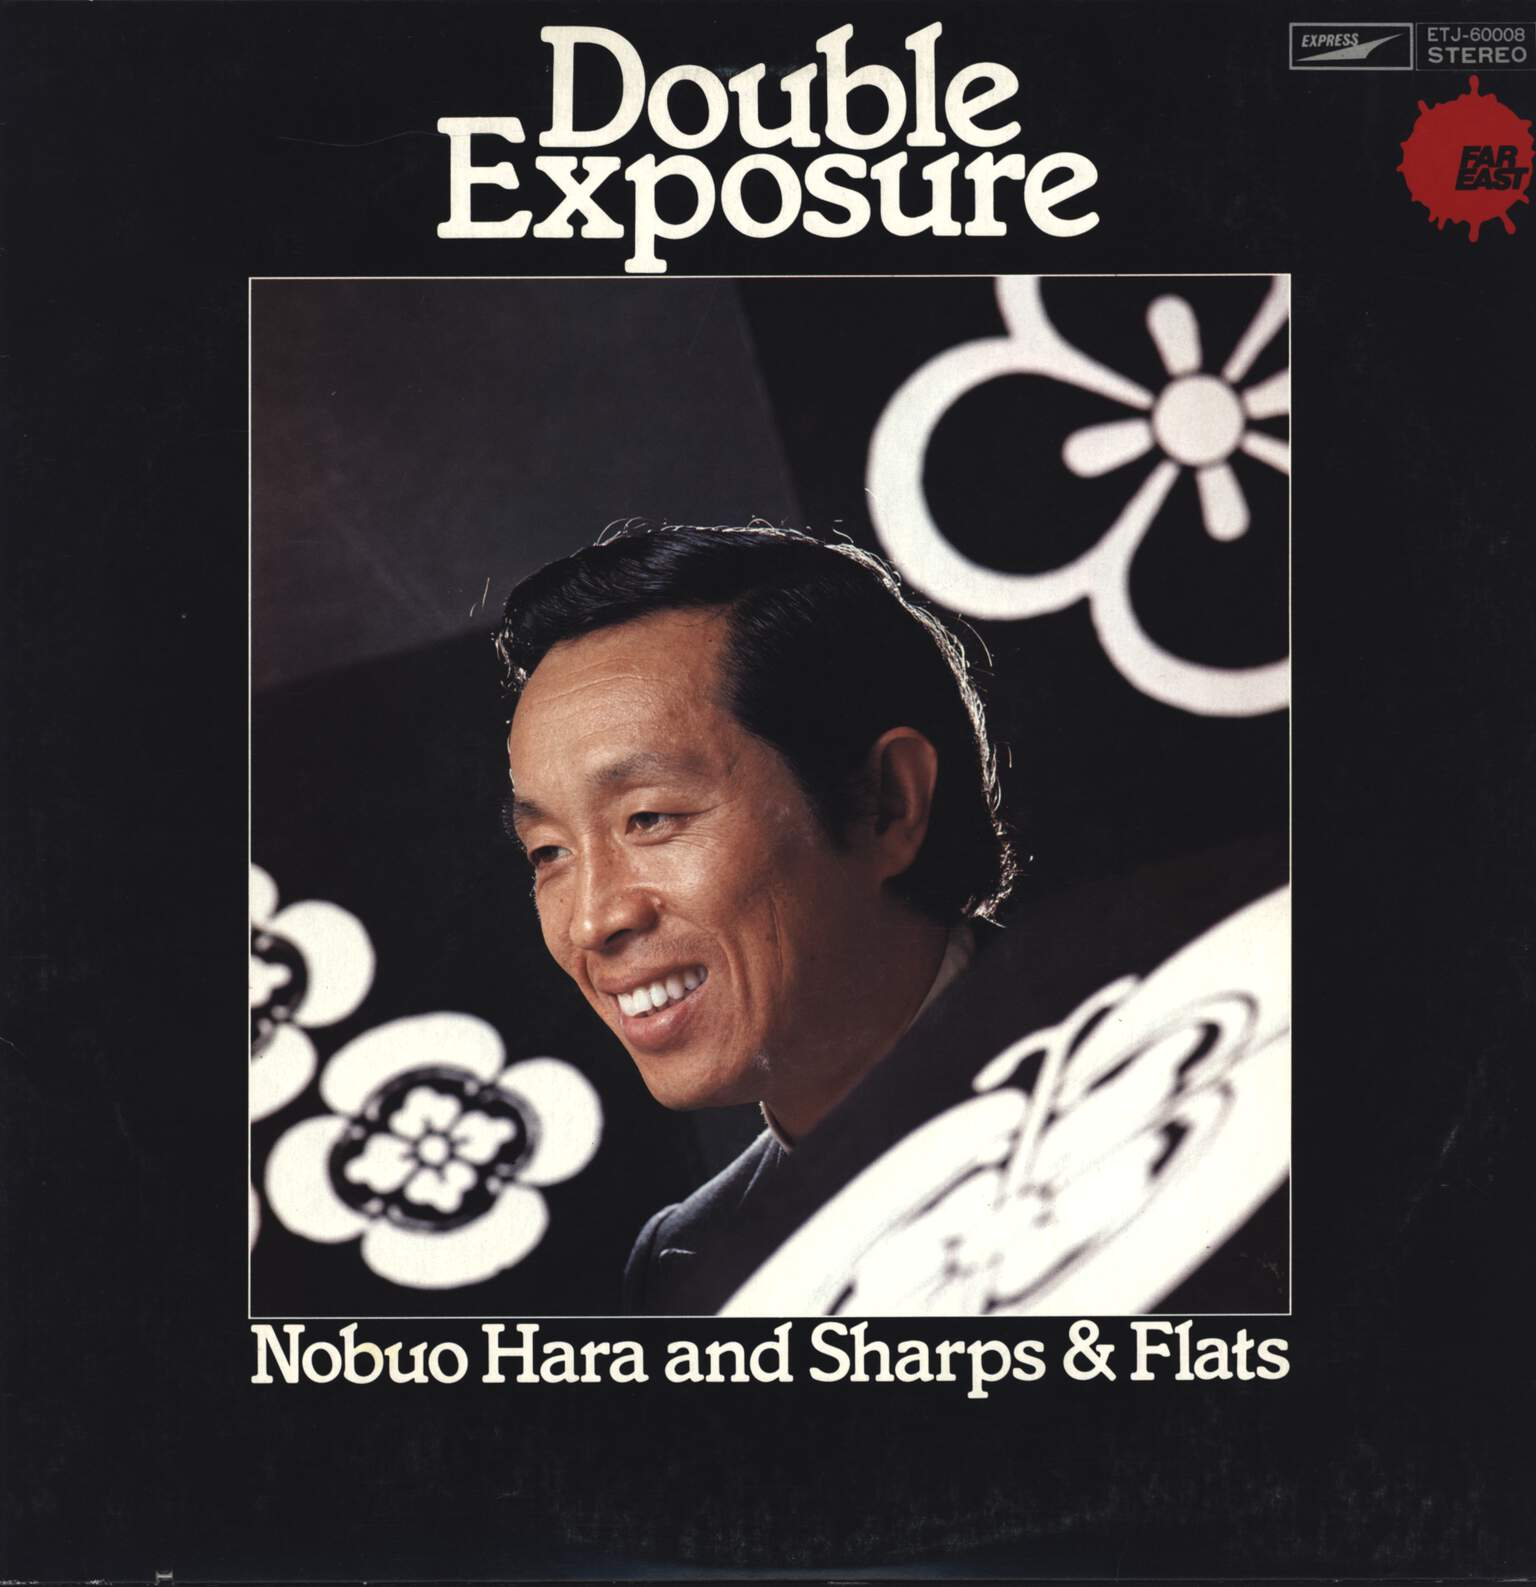 Nobuo Hara and His Sharps & Flats: Double Exposure, LP (Vinyl)